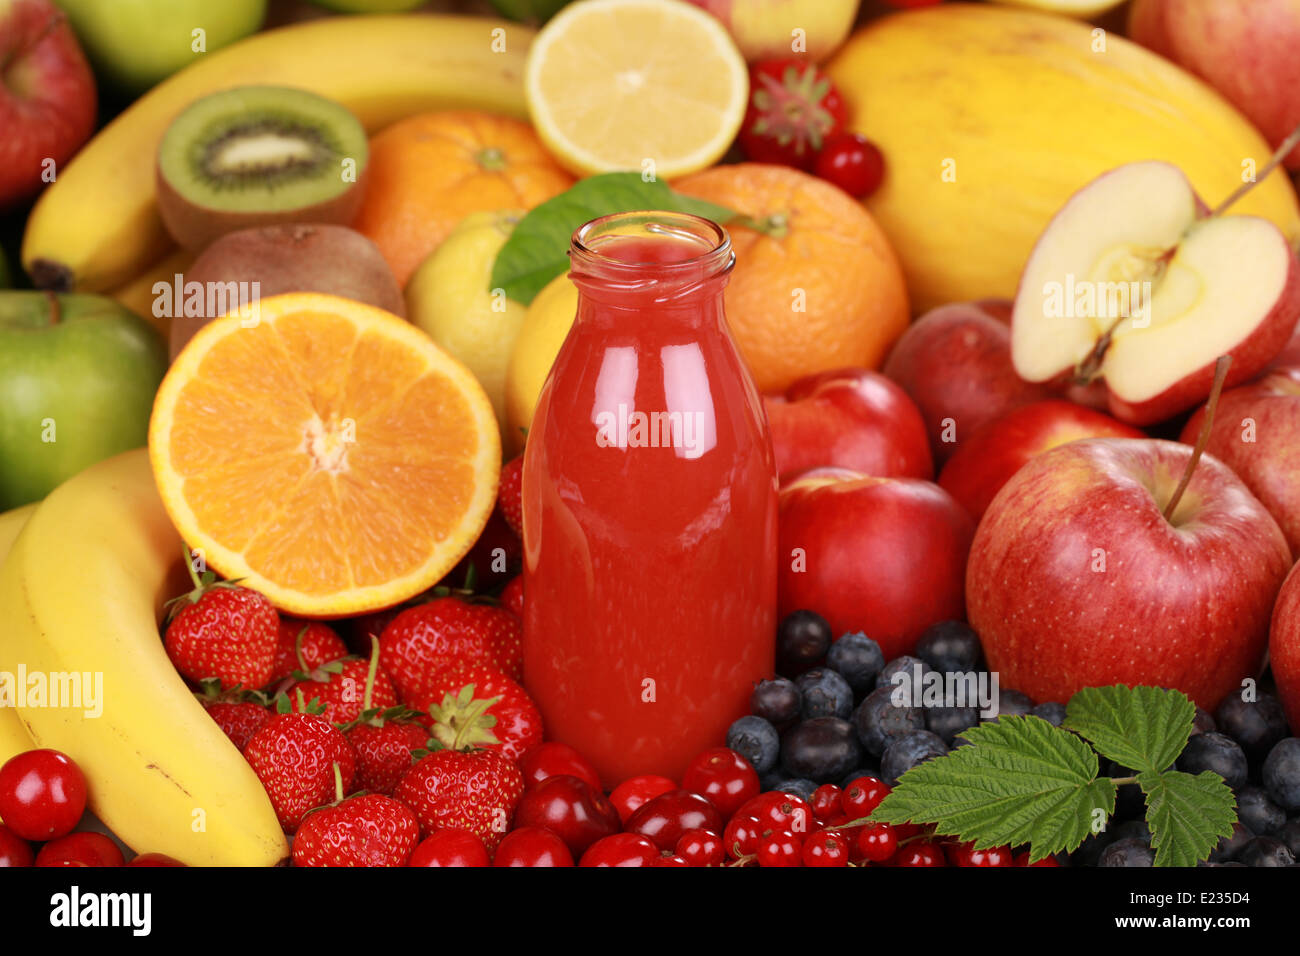 Freshly squeezed juice from red fruits in a bottle Stock Photo